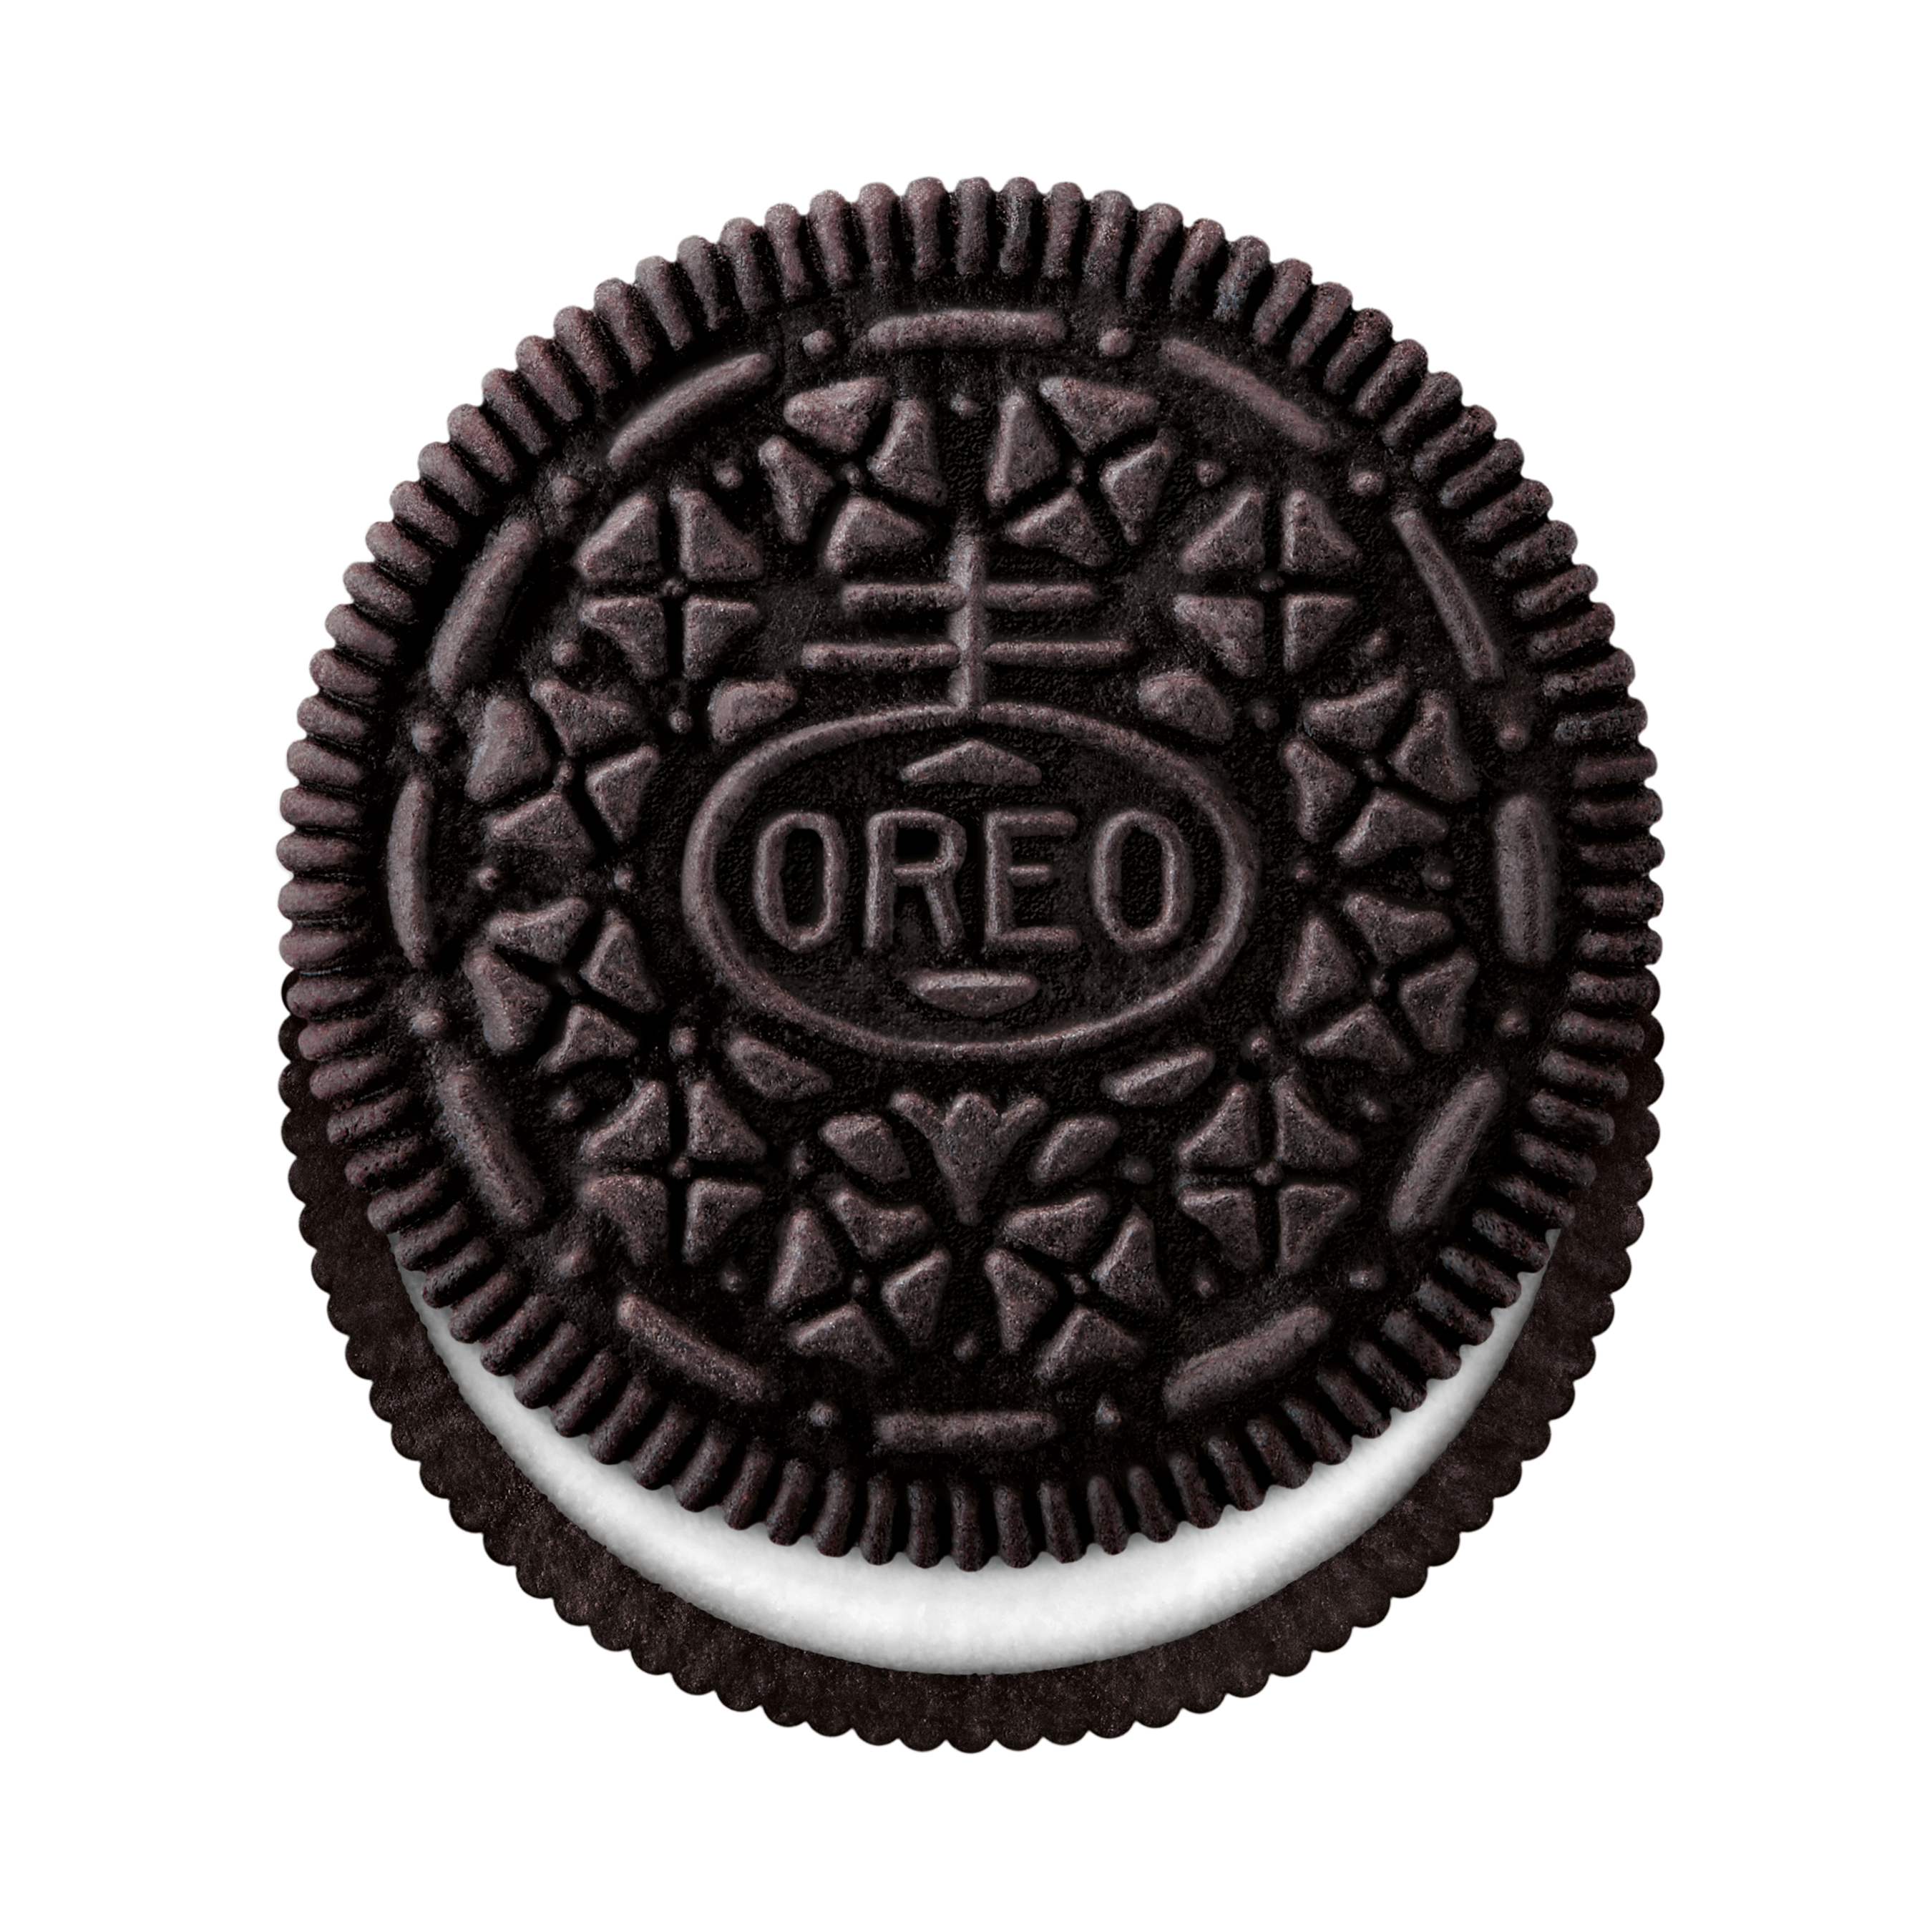 clipart oreo transparent